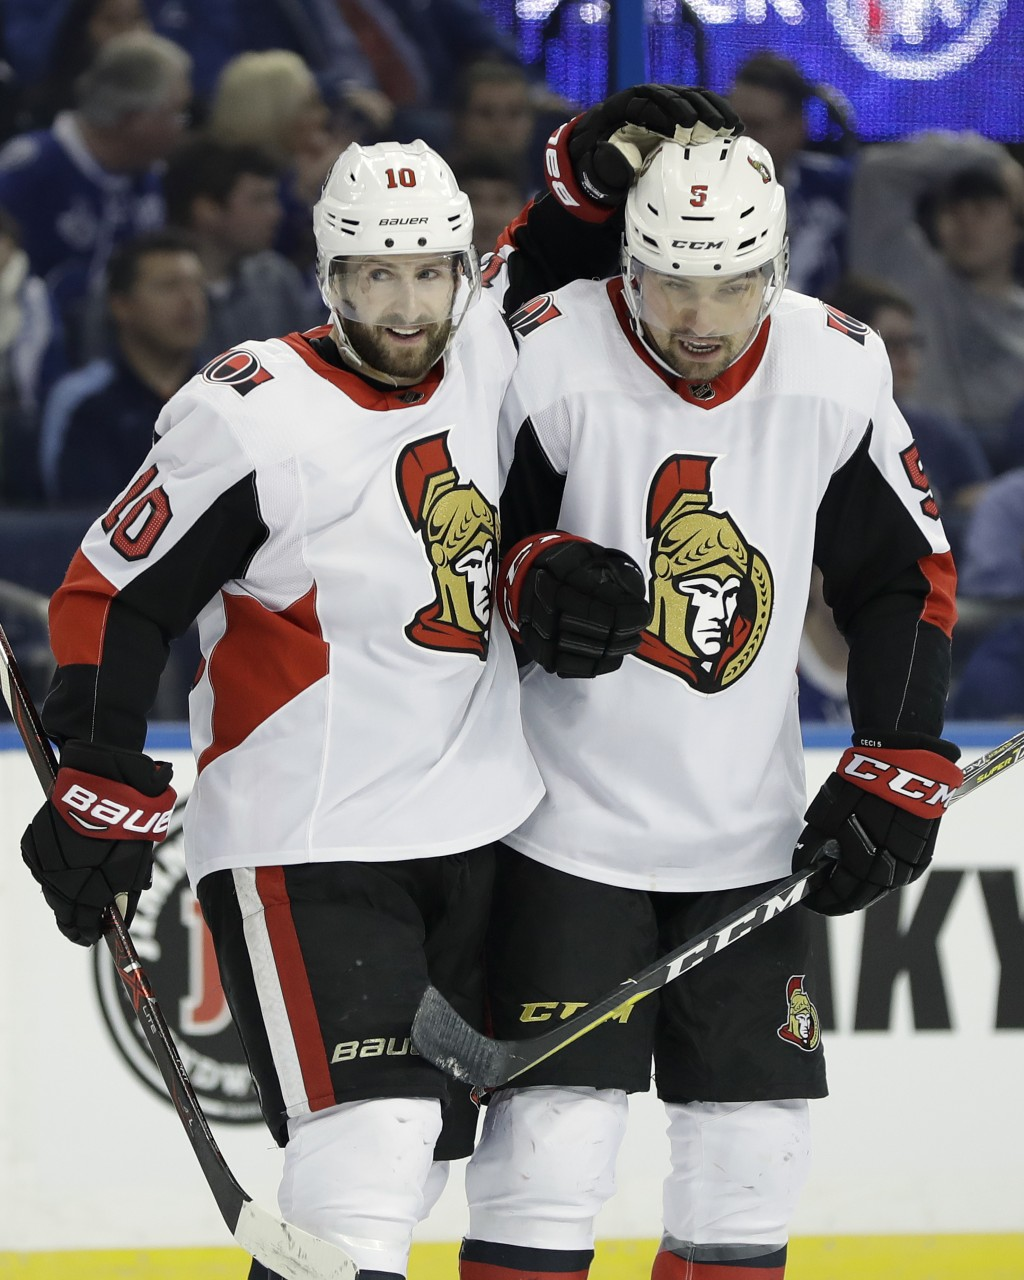 Ottawa Senators left wing Tom Pyatt (10) celebrates his goal against the Tampa Bay Lightning with defenseman Cody Ceci (5) during the first period of